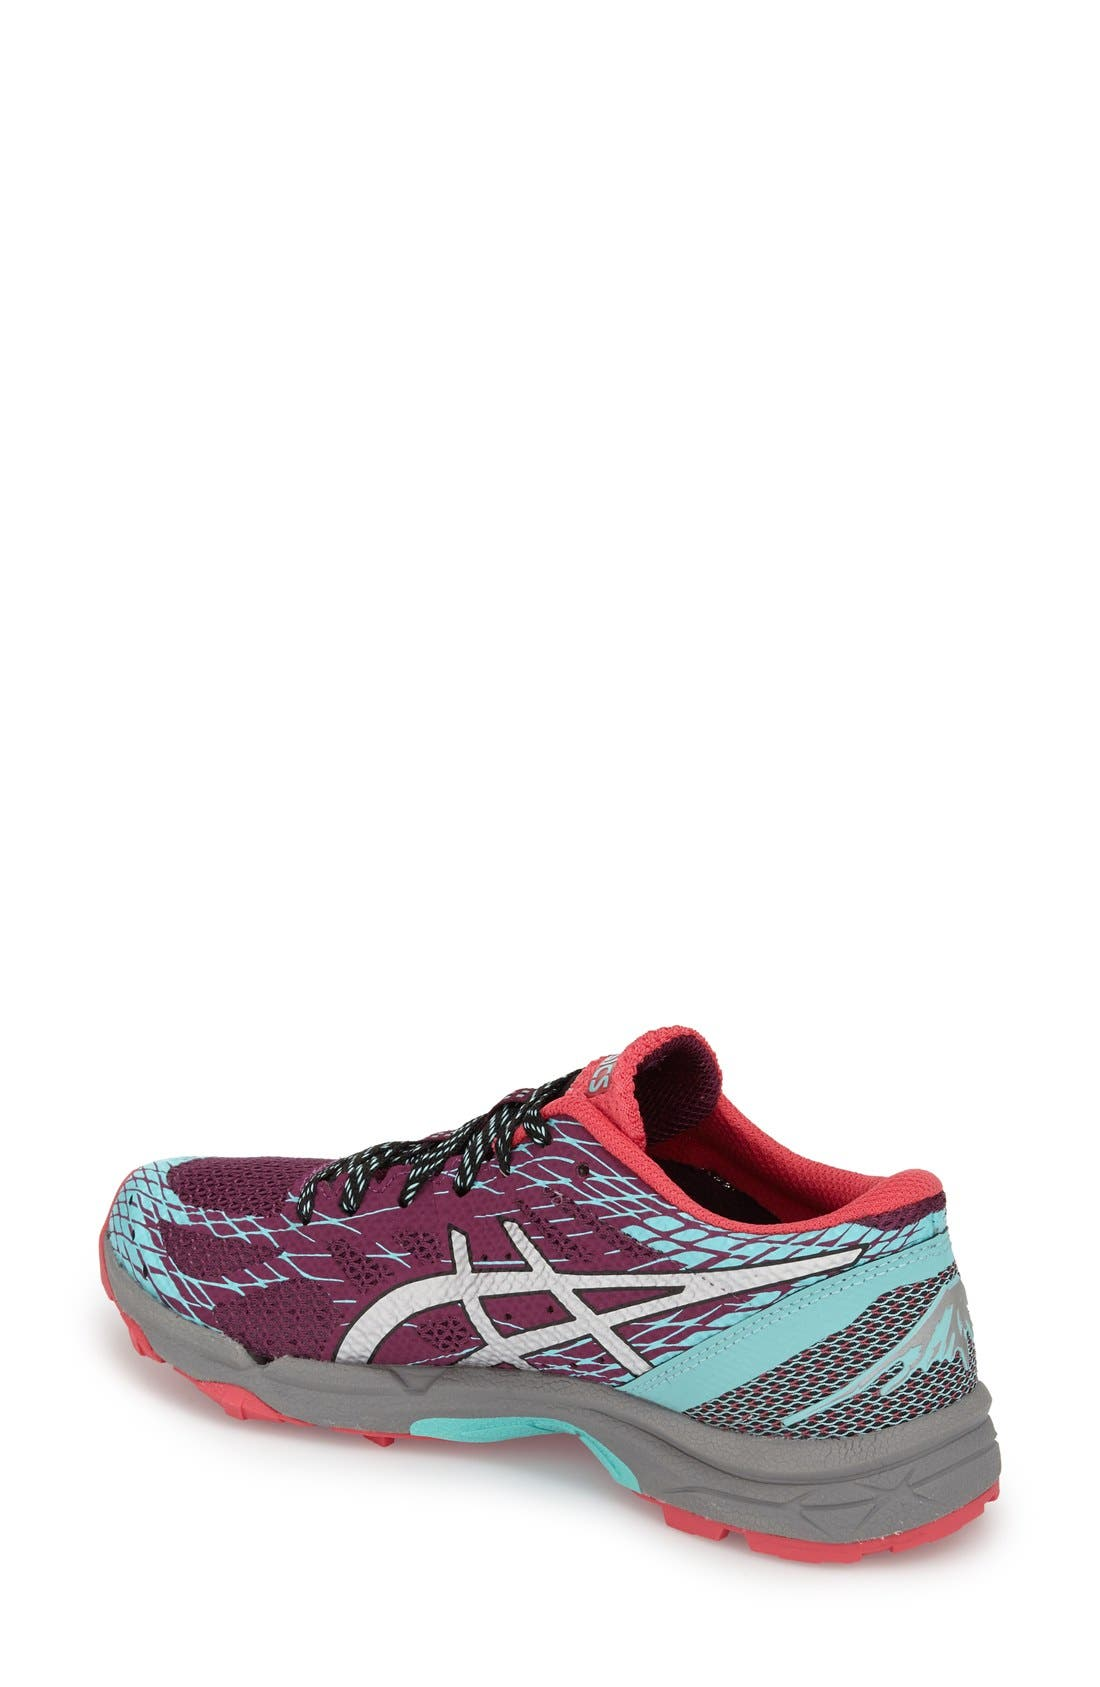 Alternate Image 2  - ASICS® 'GEL-Fuji Lyte' Running Shoe (Women)